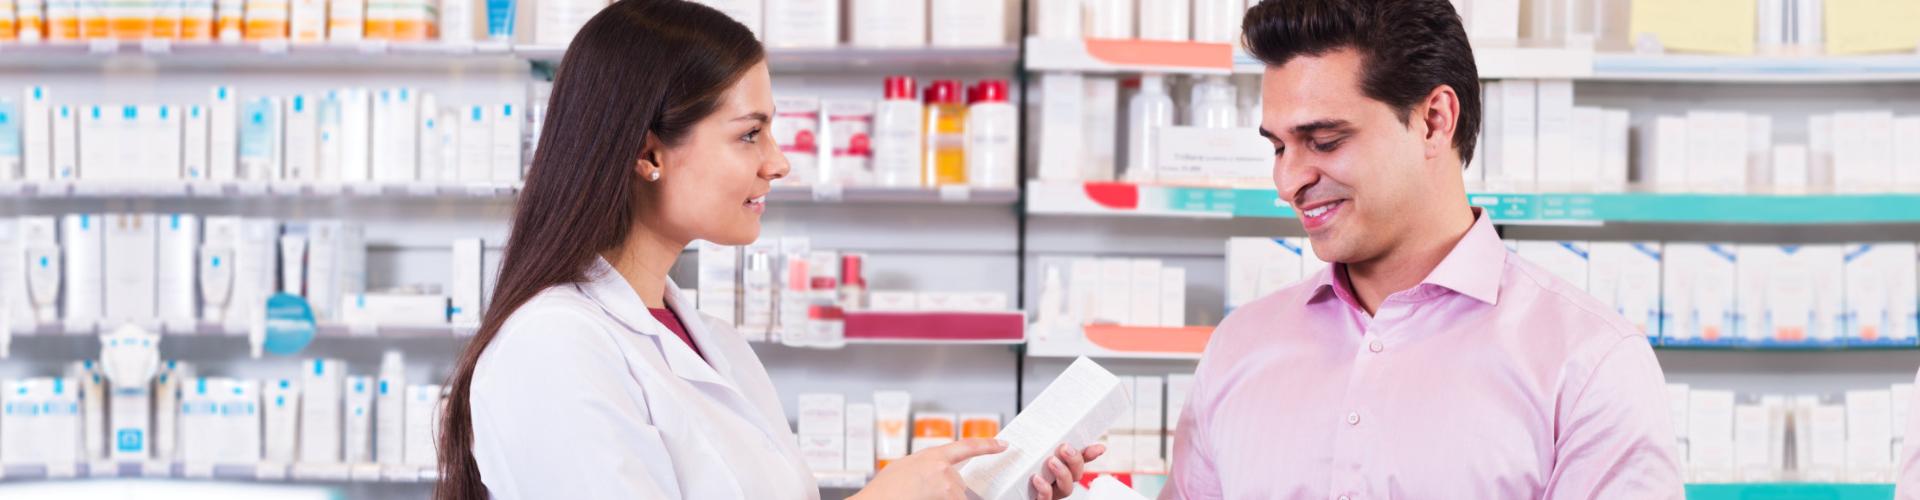 pharmacists showing product to customer